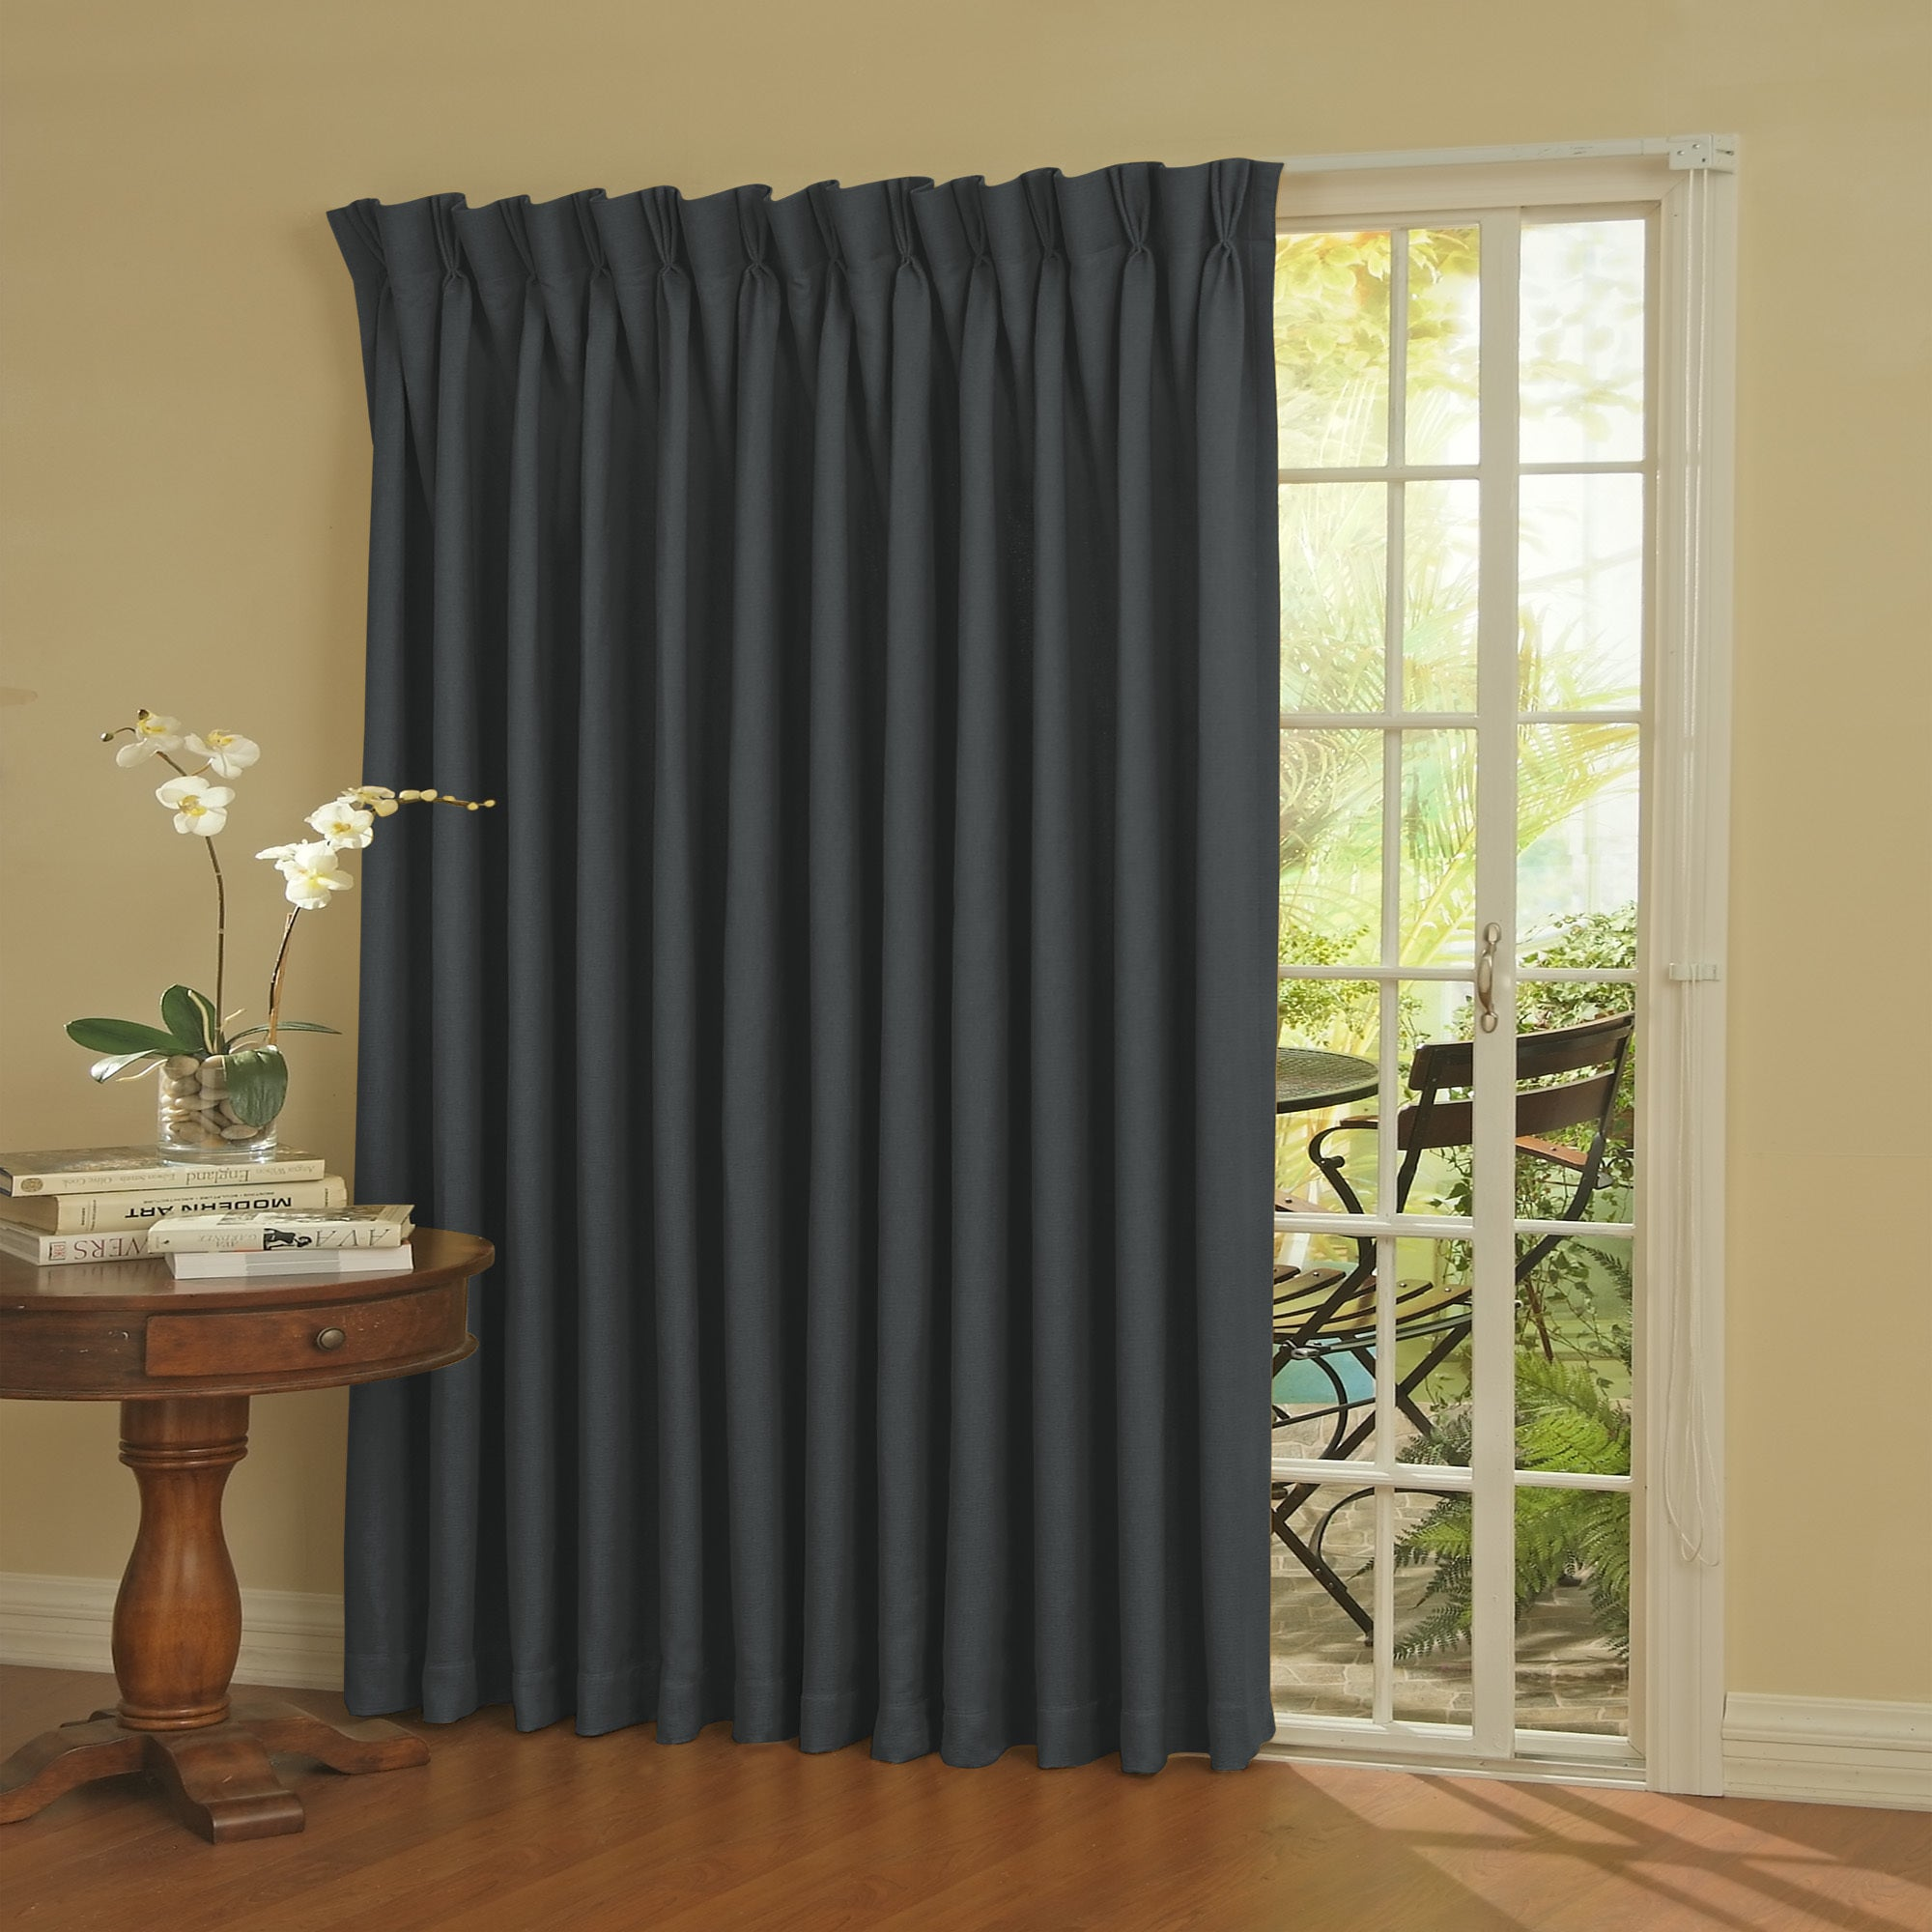 Shop Eclipse Thermal Blackout Patio Door Curtain Panel 100 X 84